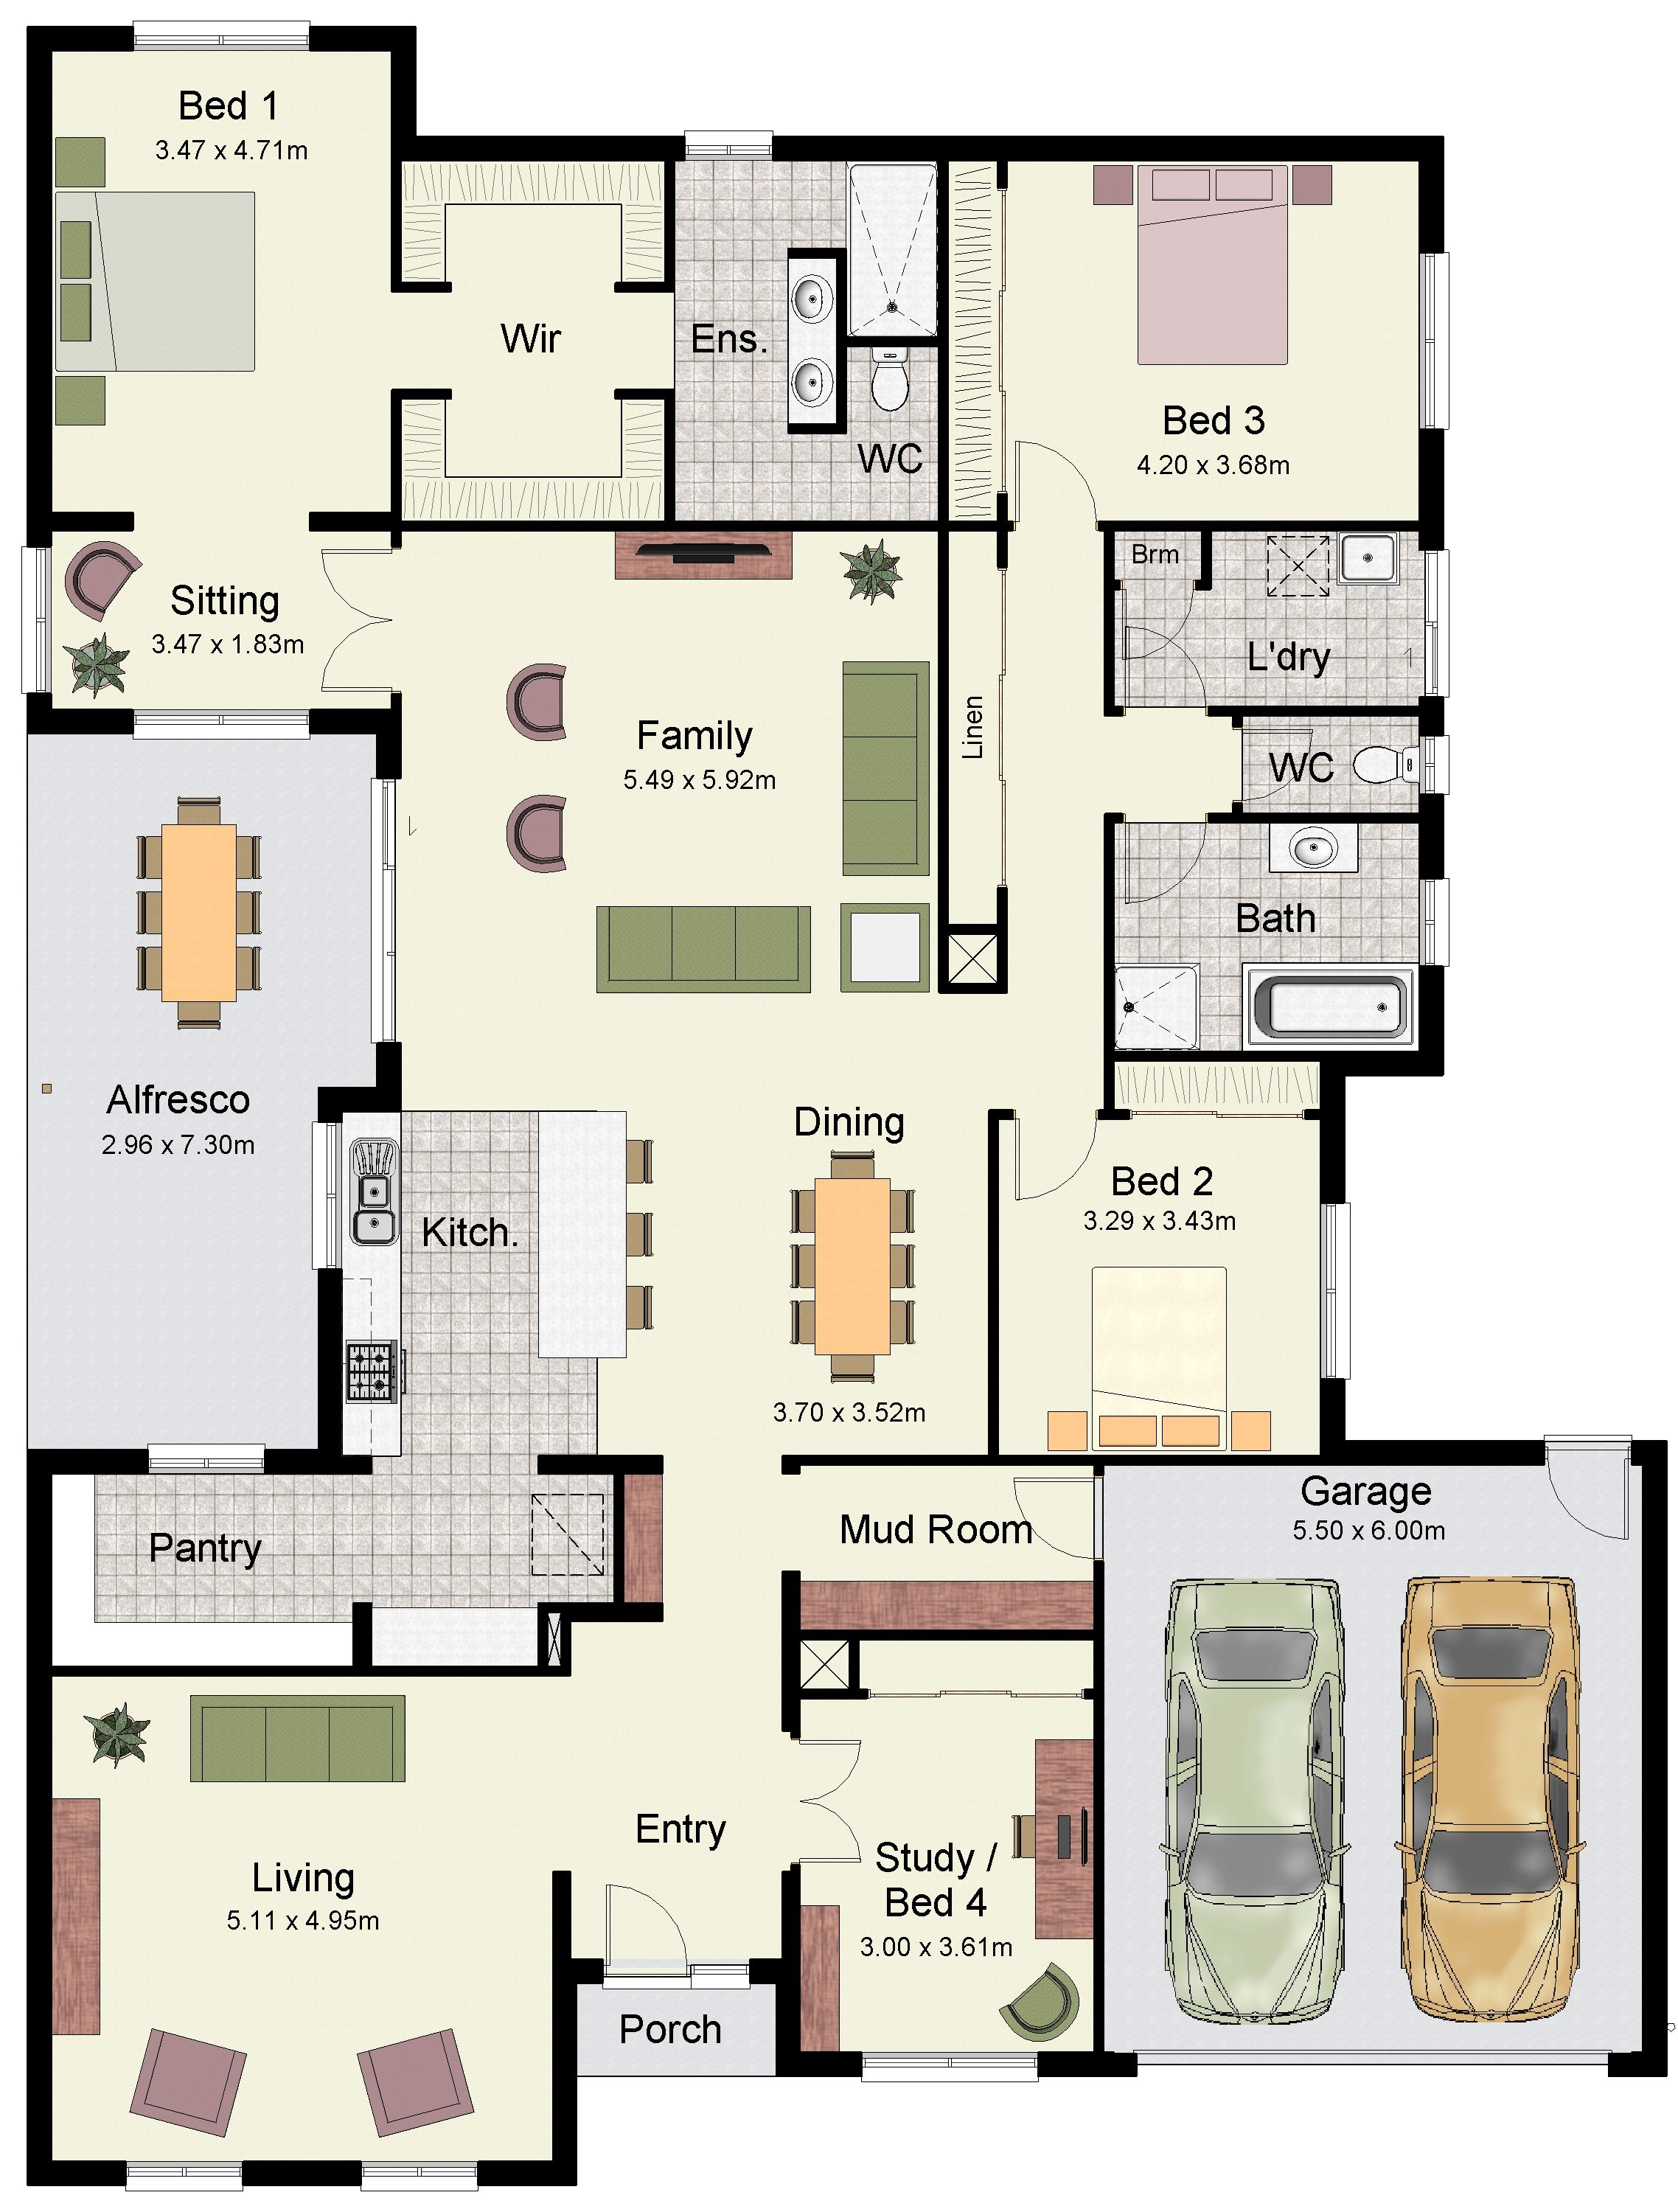 The Eureka 307 Offers A Massive Parents Retreat My House Plans Home Design Floor Plans House Construction Plan